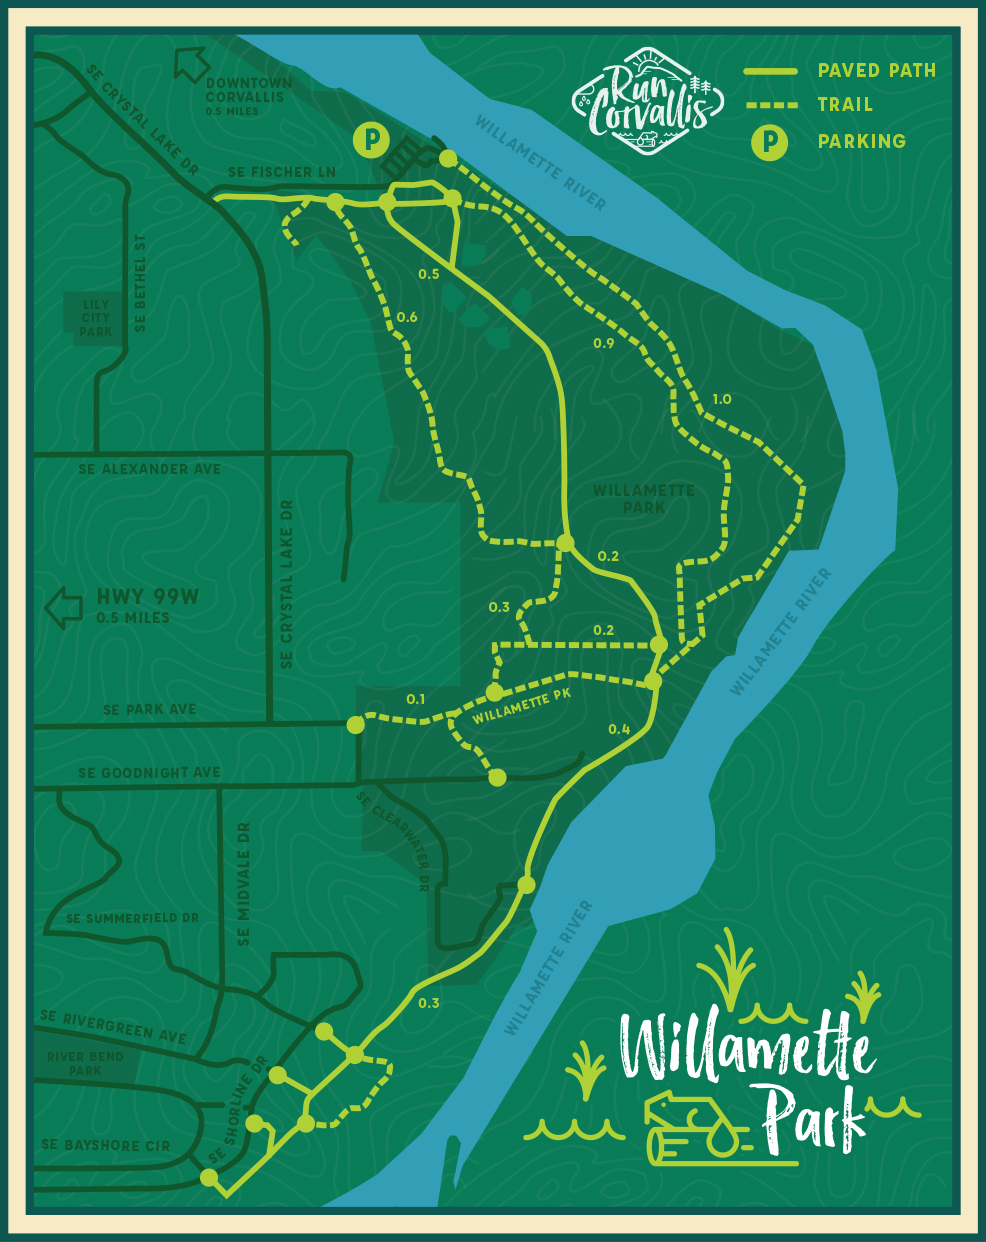 Willamette Park Overview Map.jpg